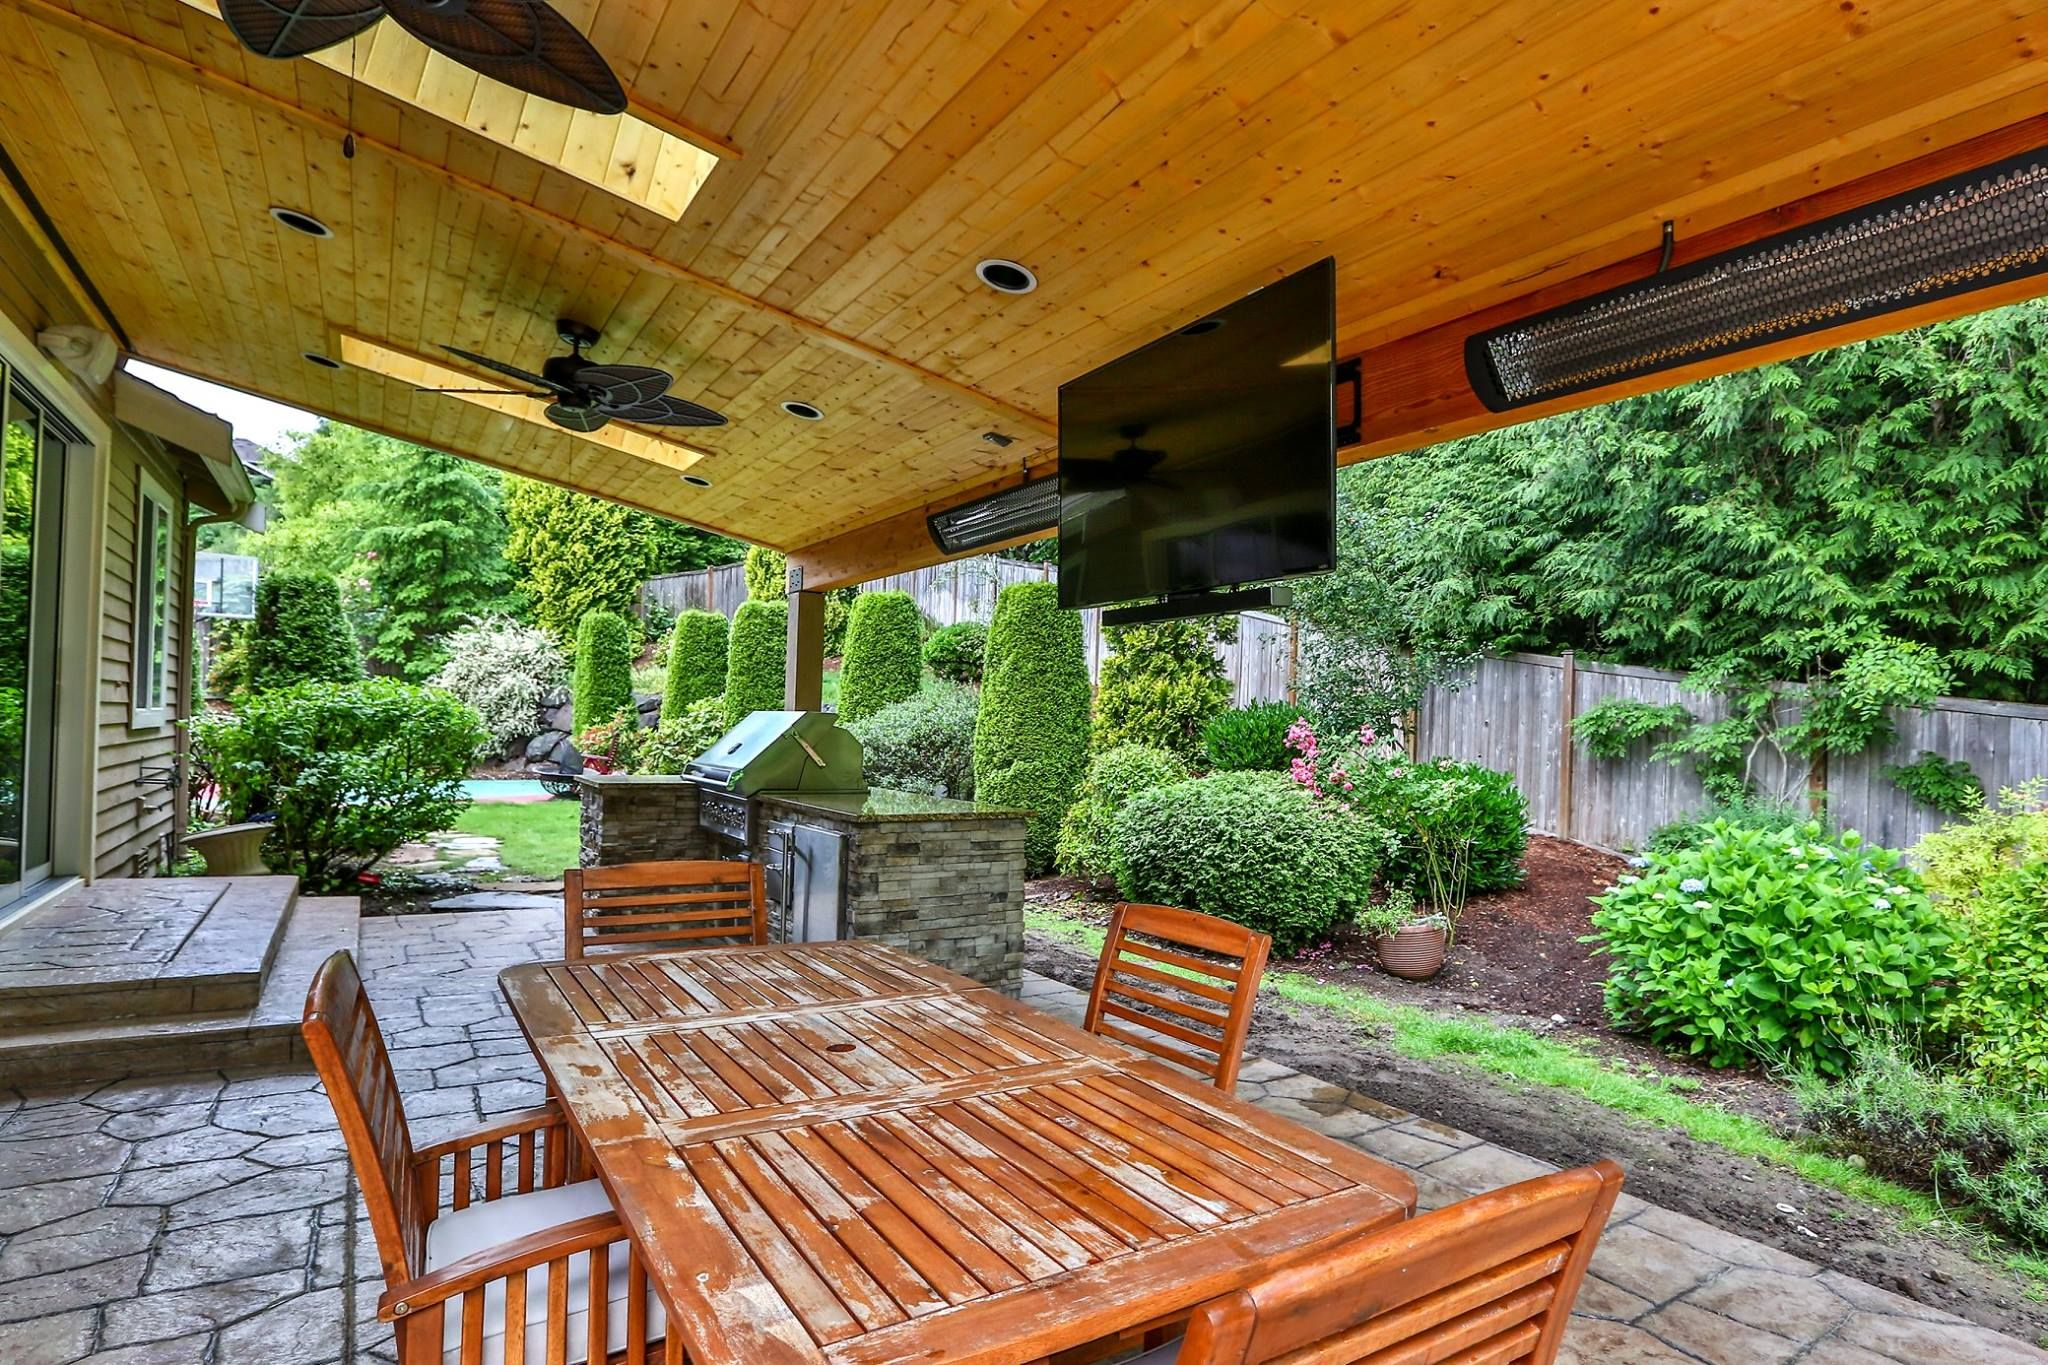 Beautiful Outdoor Patio By Timberline Patio Covers, LLC. Tungsten  Smart Heat Electric Provides Efficient And Ambient Heating.